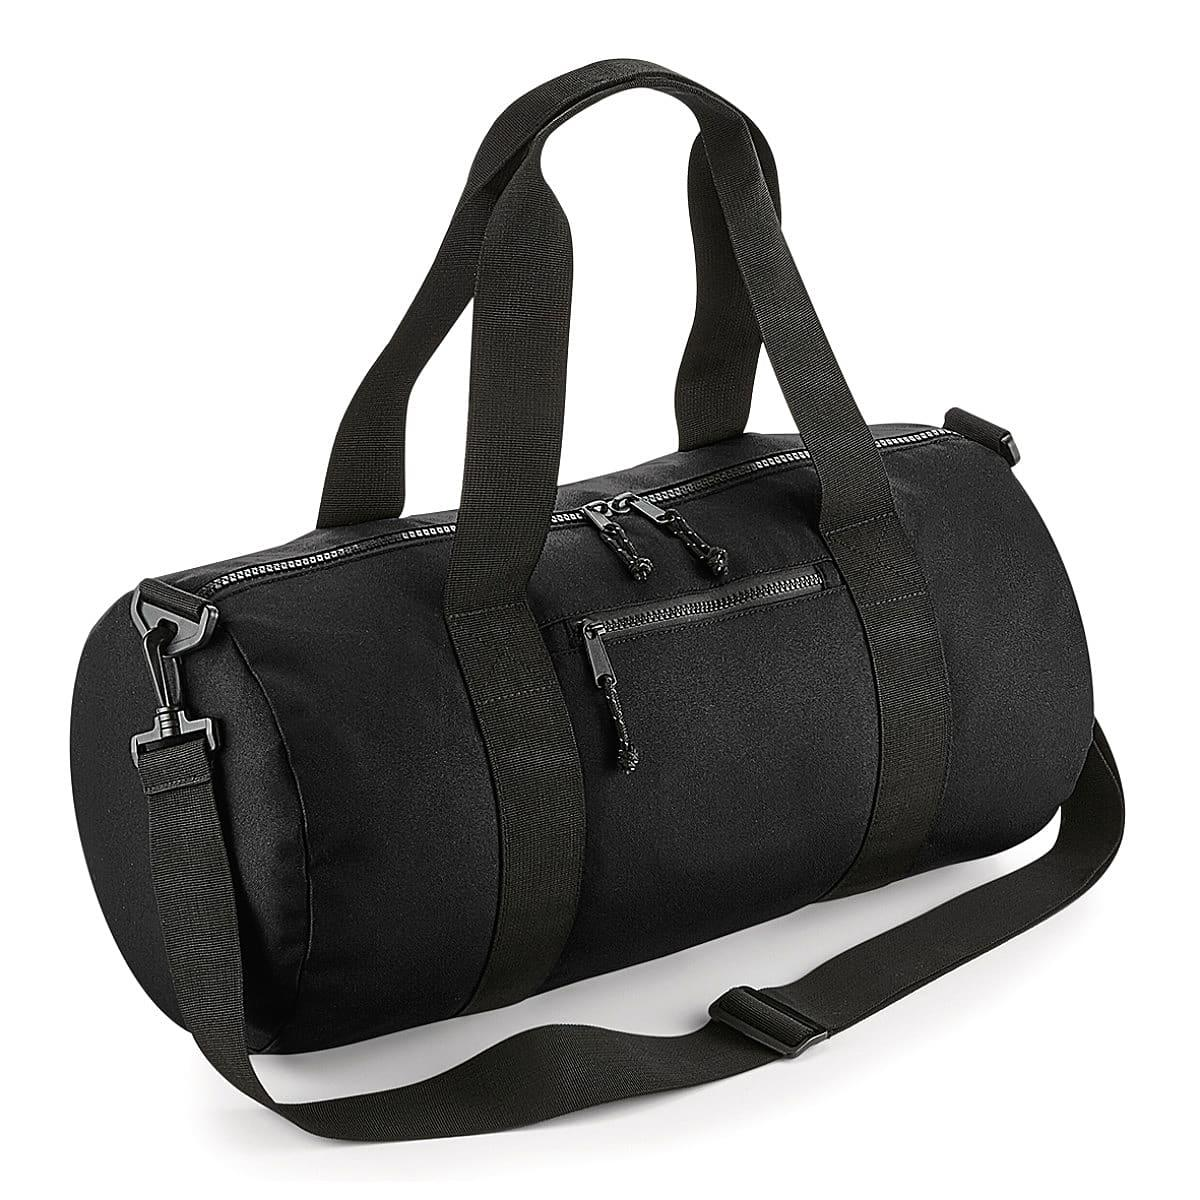 Bagbase Recycled Barrel Bag in Black (Product Code: BG284)